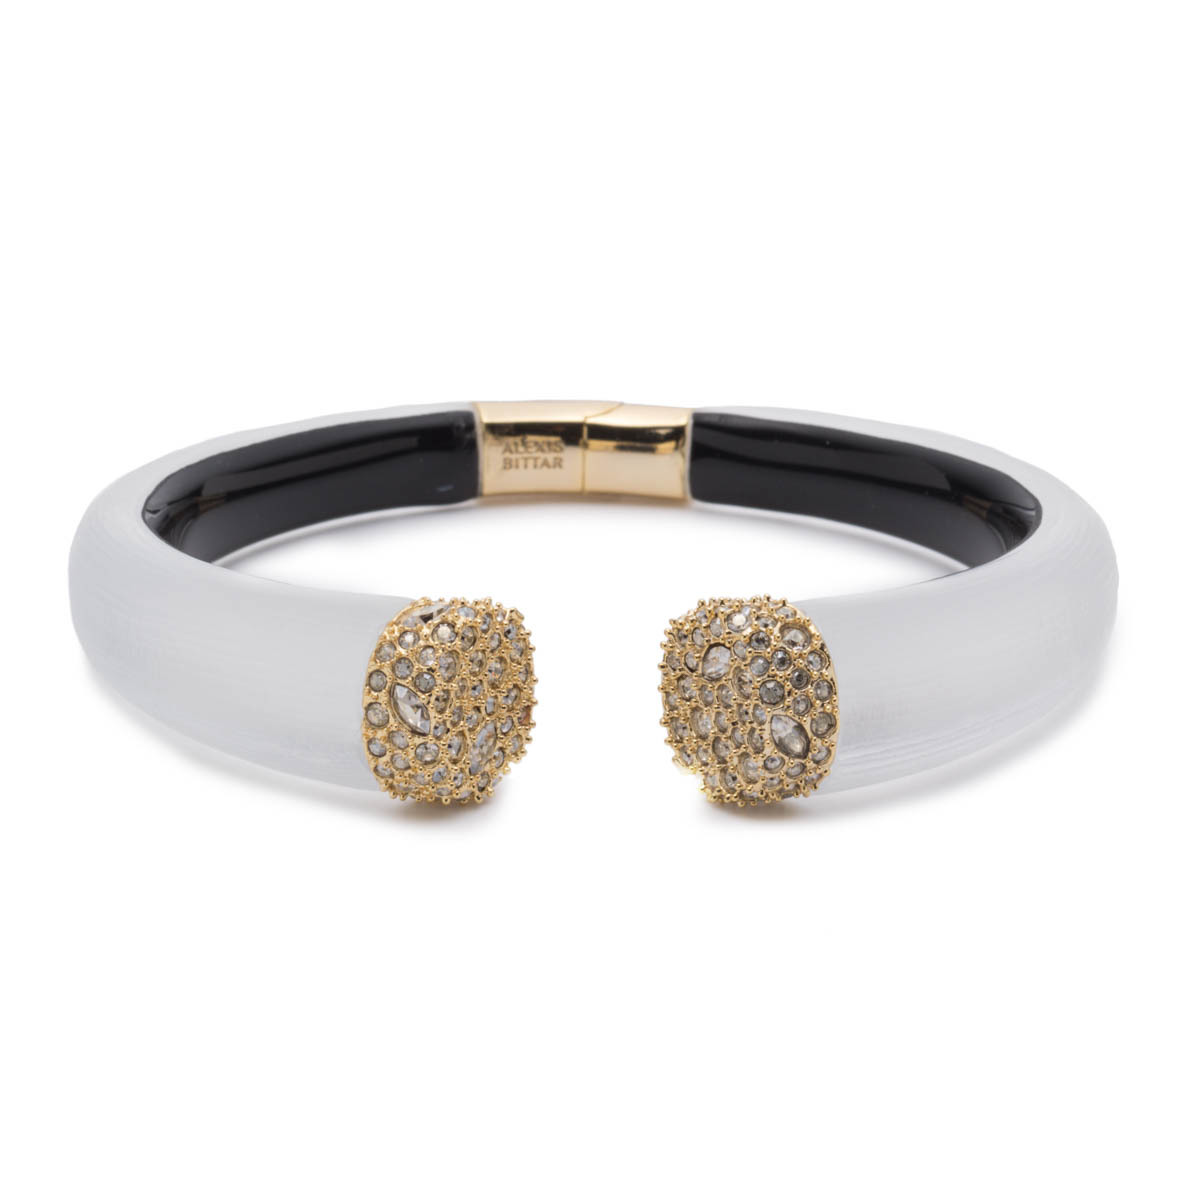 Couture Fashion Bracelet by Alexis Bittar